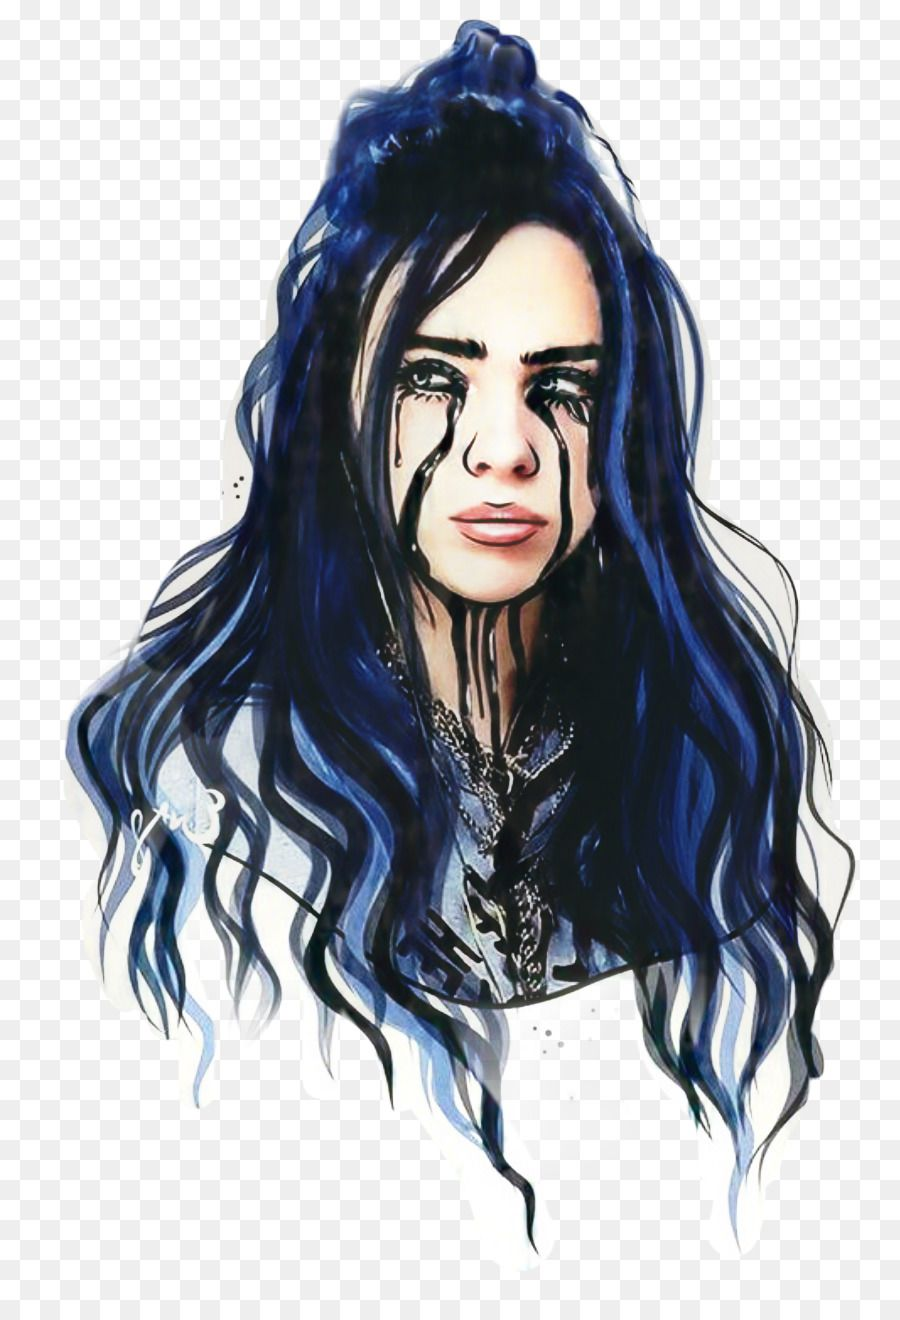 Billie Eilish Desktop Wallpaper Drawing Aesthetics Music Png Drawings Billie Eilish Billie